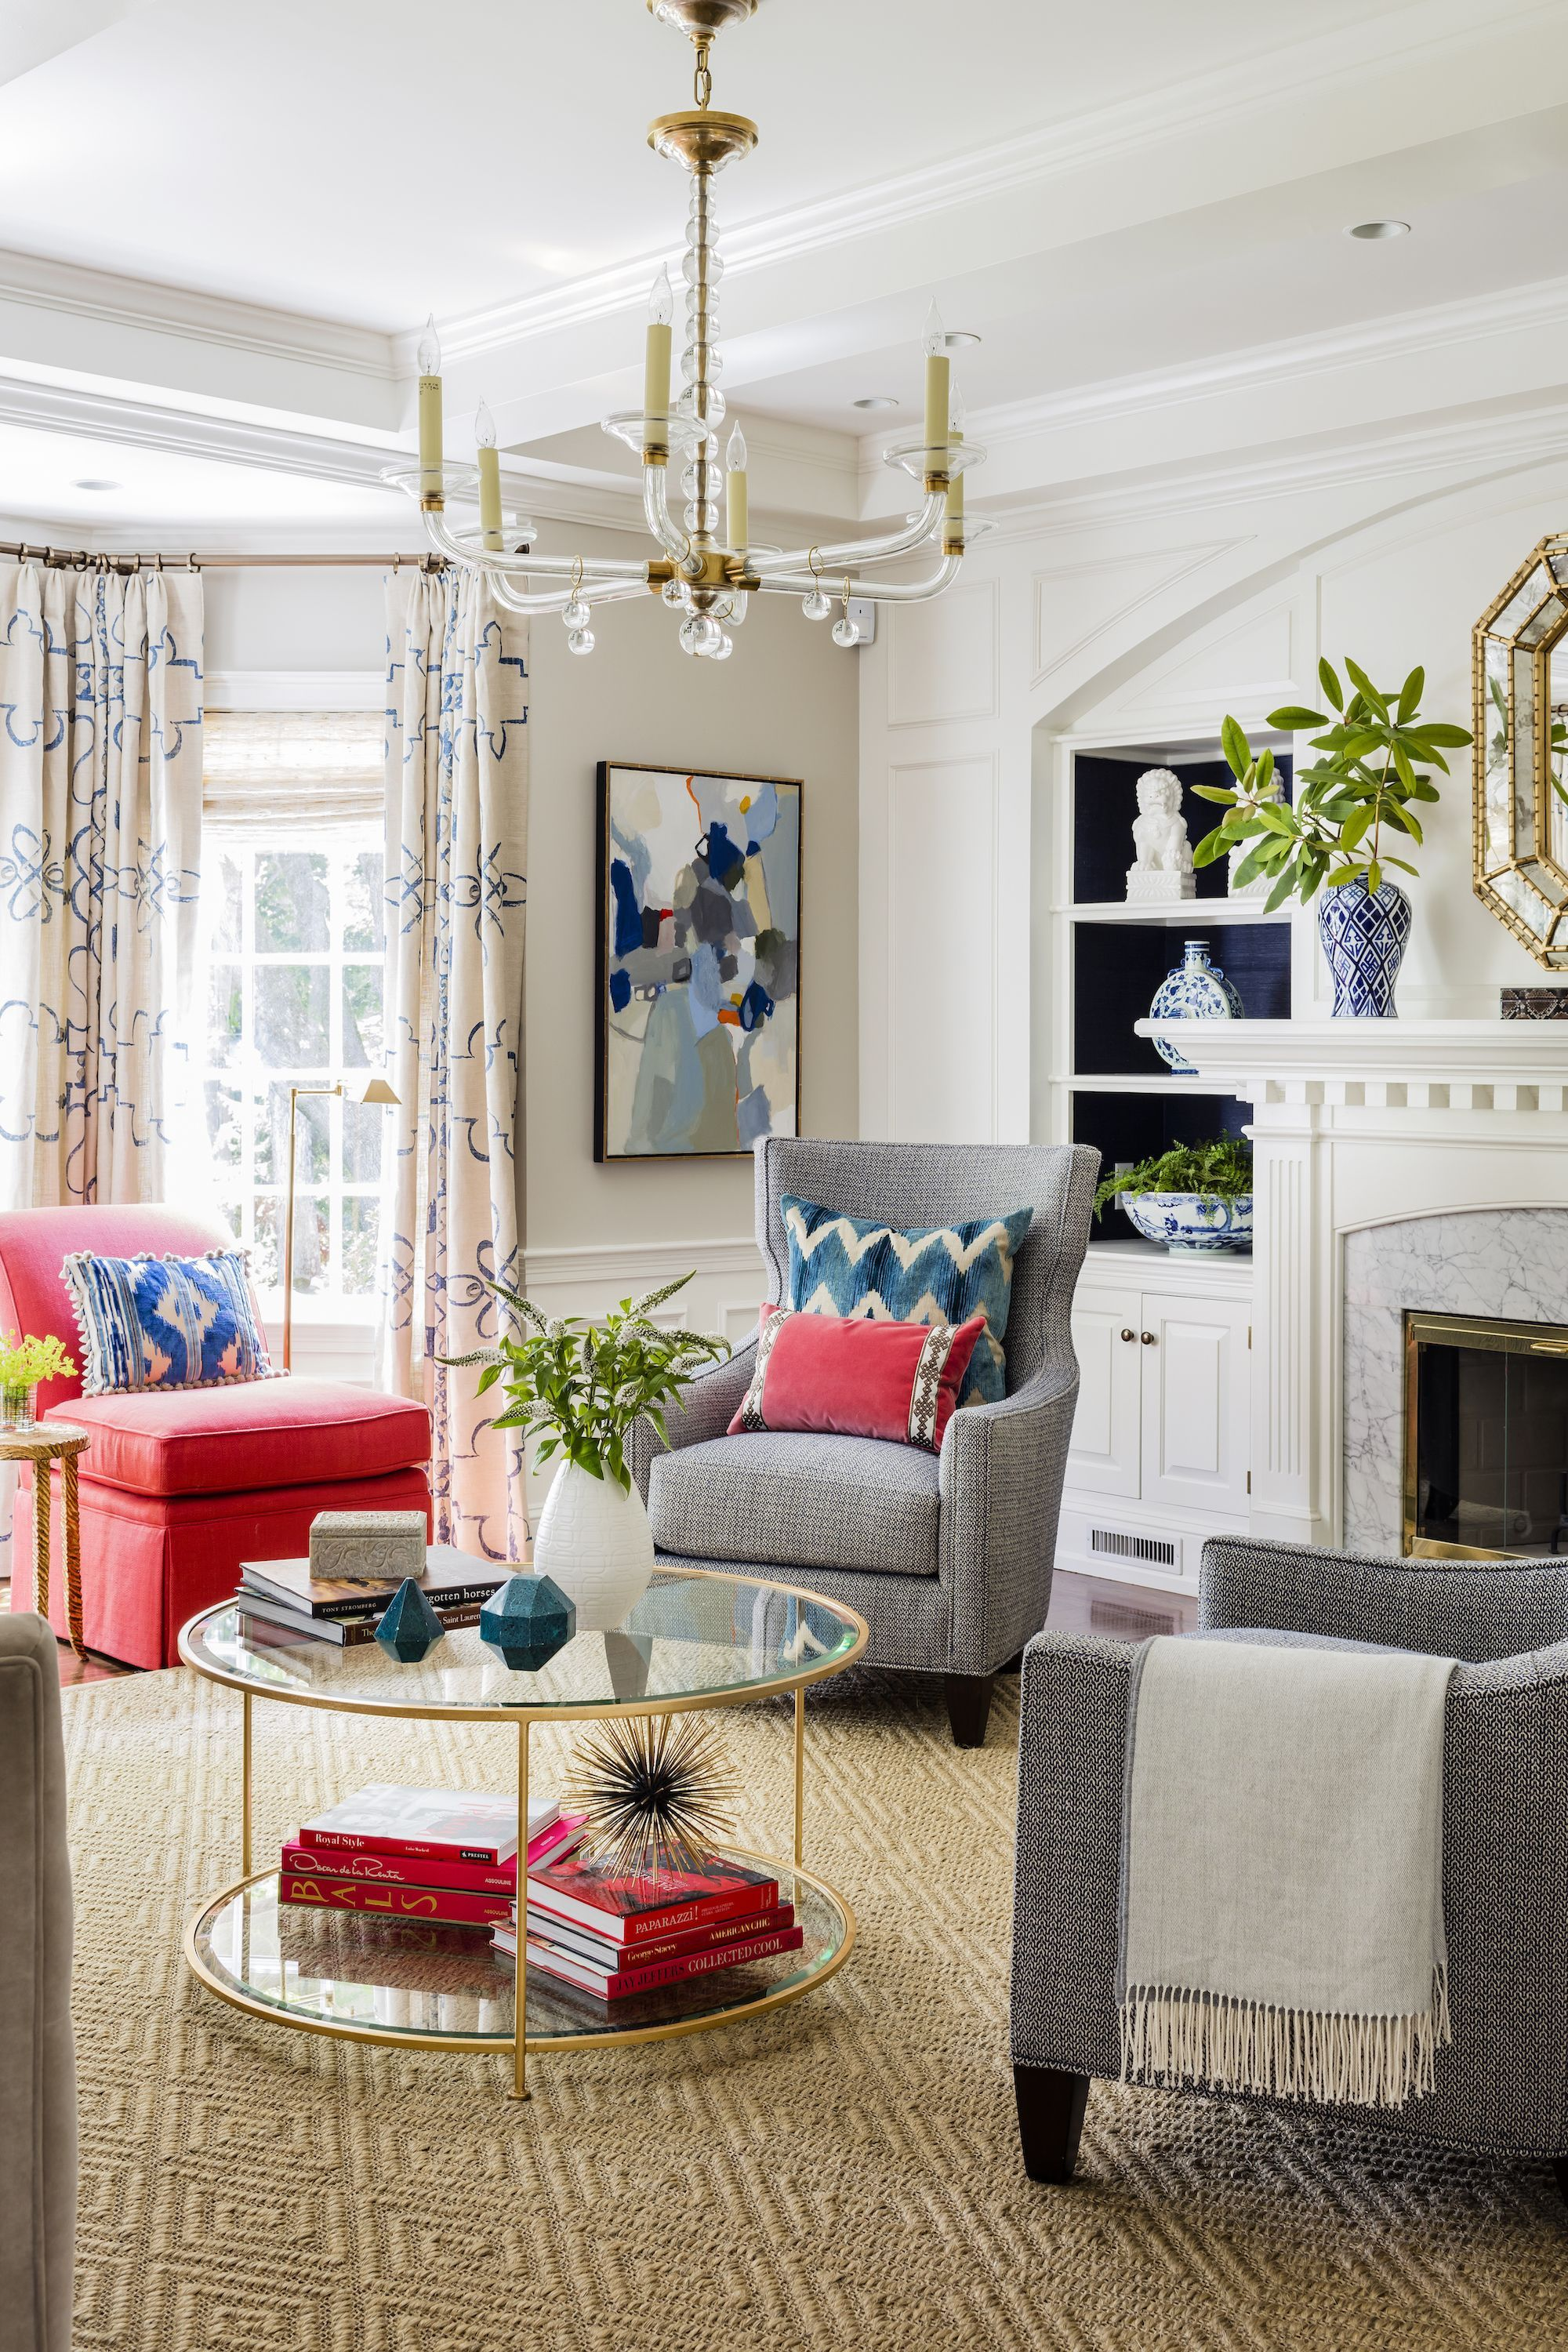 99 Ideas for Decorating Your Living Room 2021 in 2020   Stylish living room, Living room decor ...